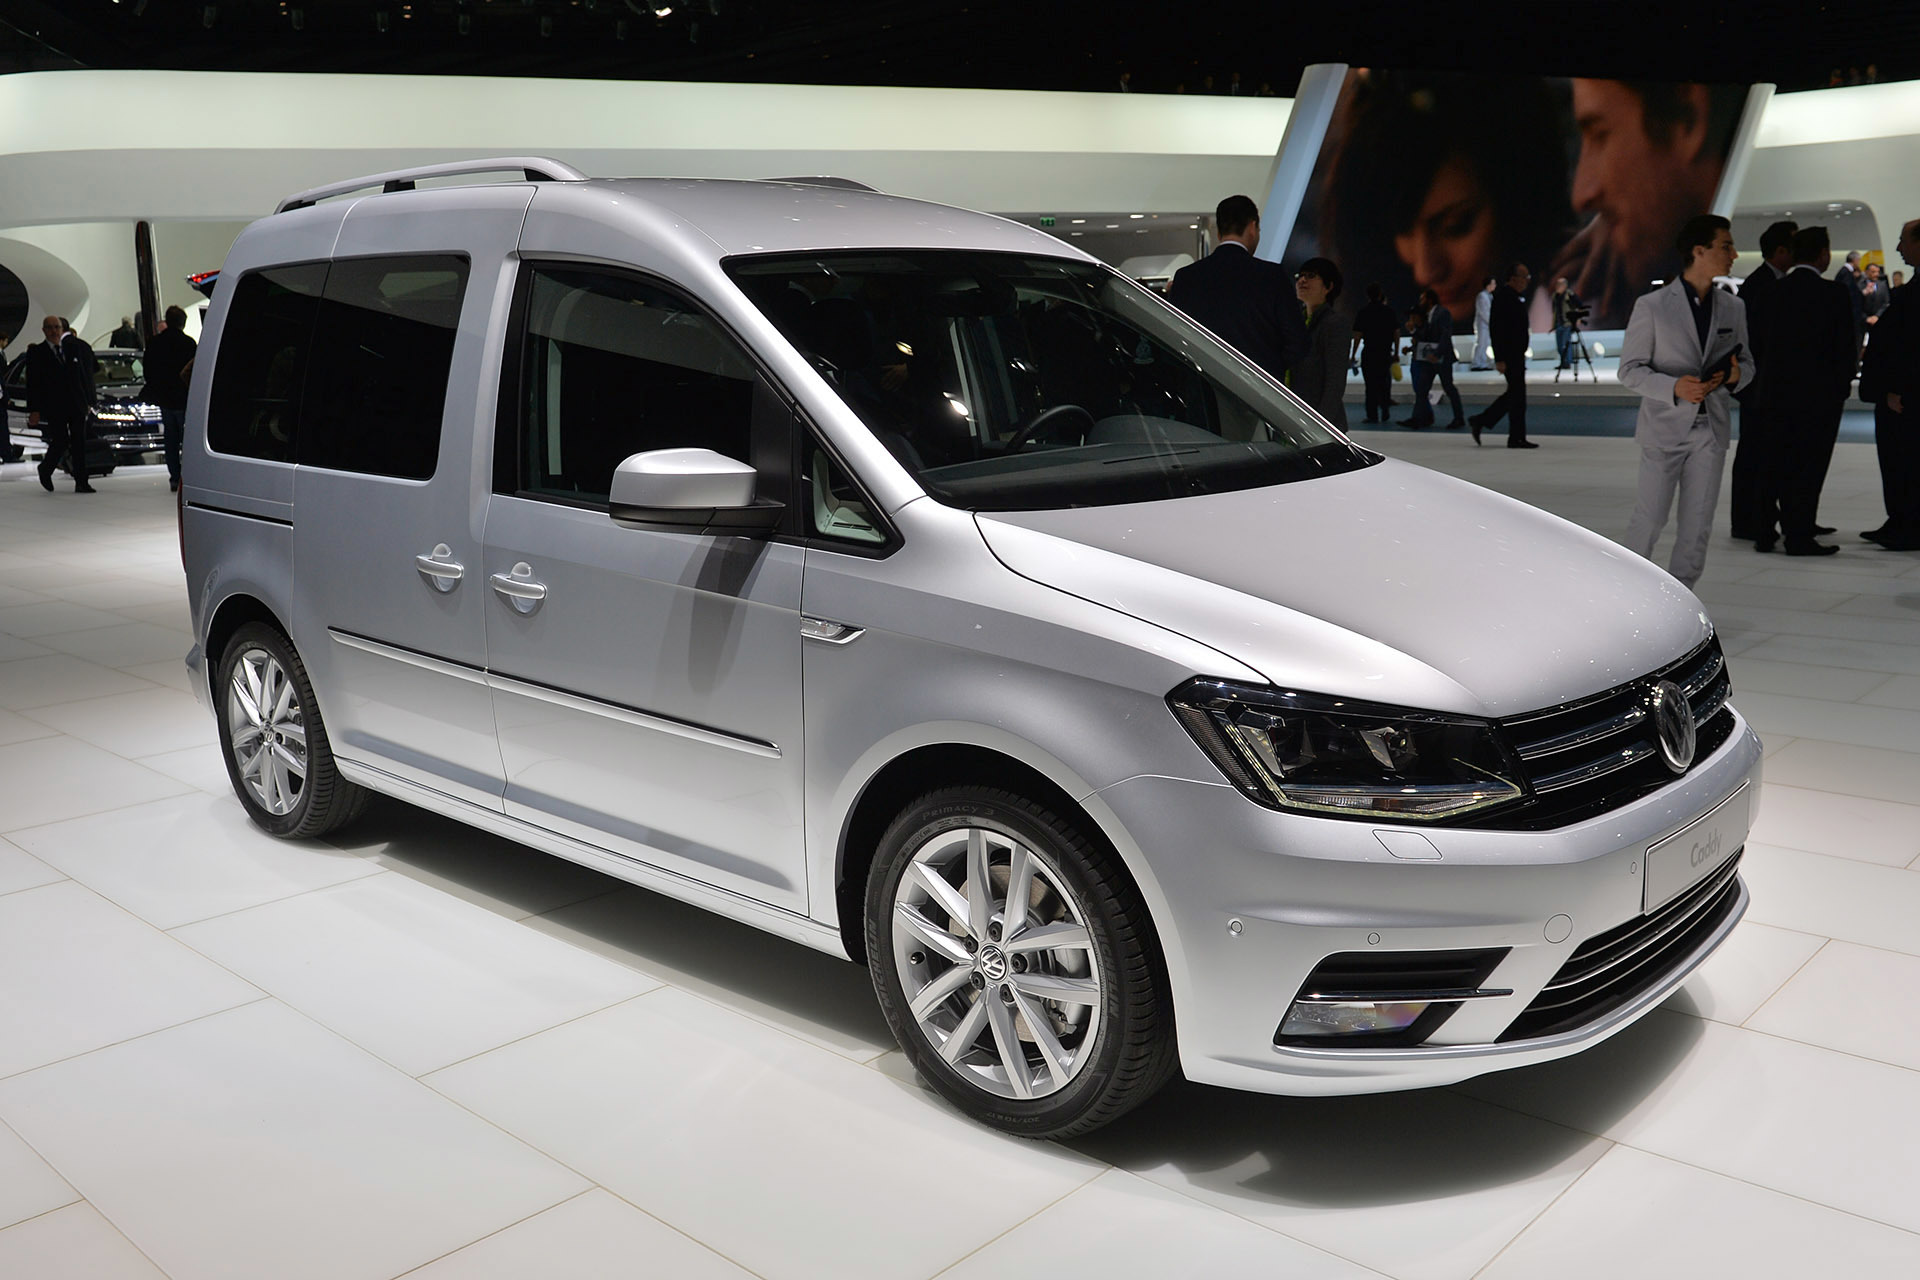 2015 volkswagen caddy geneva 2015 photo gallery autoblog. Black Bedroom Furniture Sets. Home Design Ideas